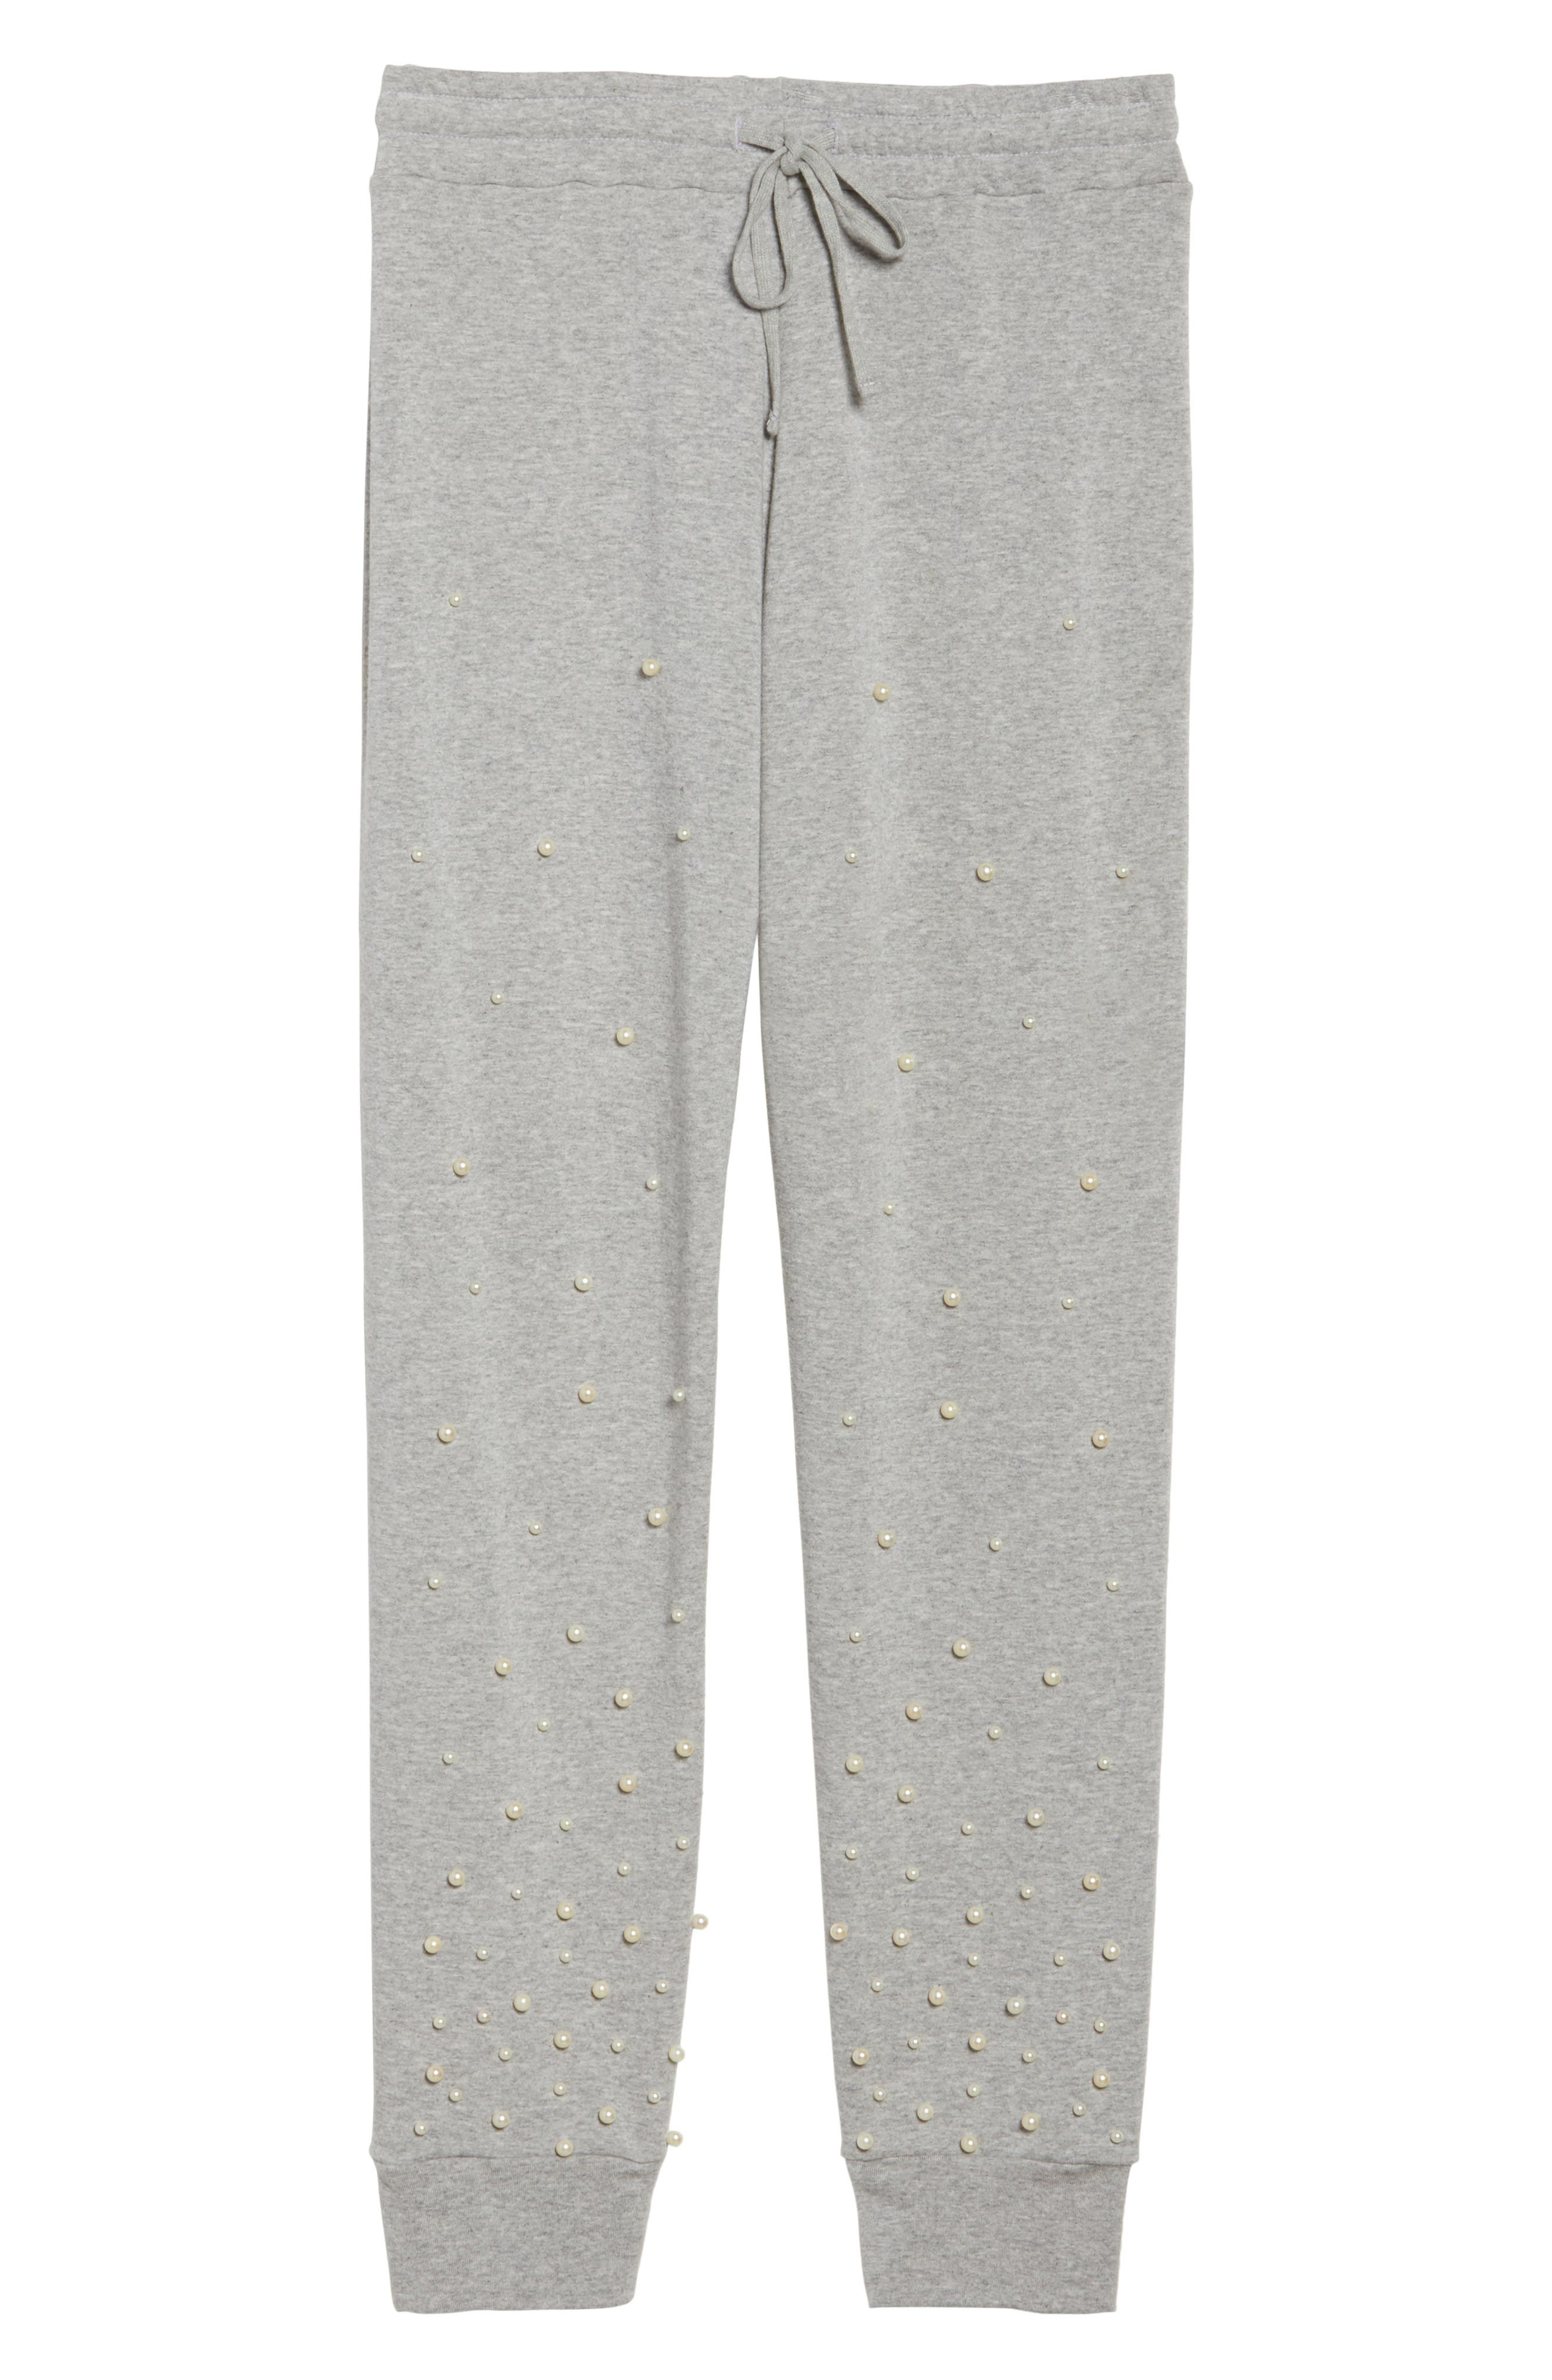 Price Imitation Pearl Embellished Lounge Pants,                             Alternate thumbnail 6, color,                             035